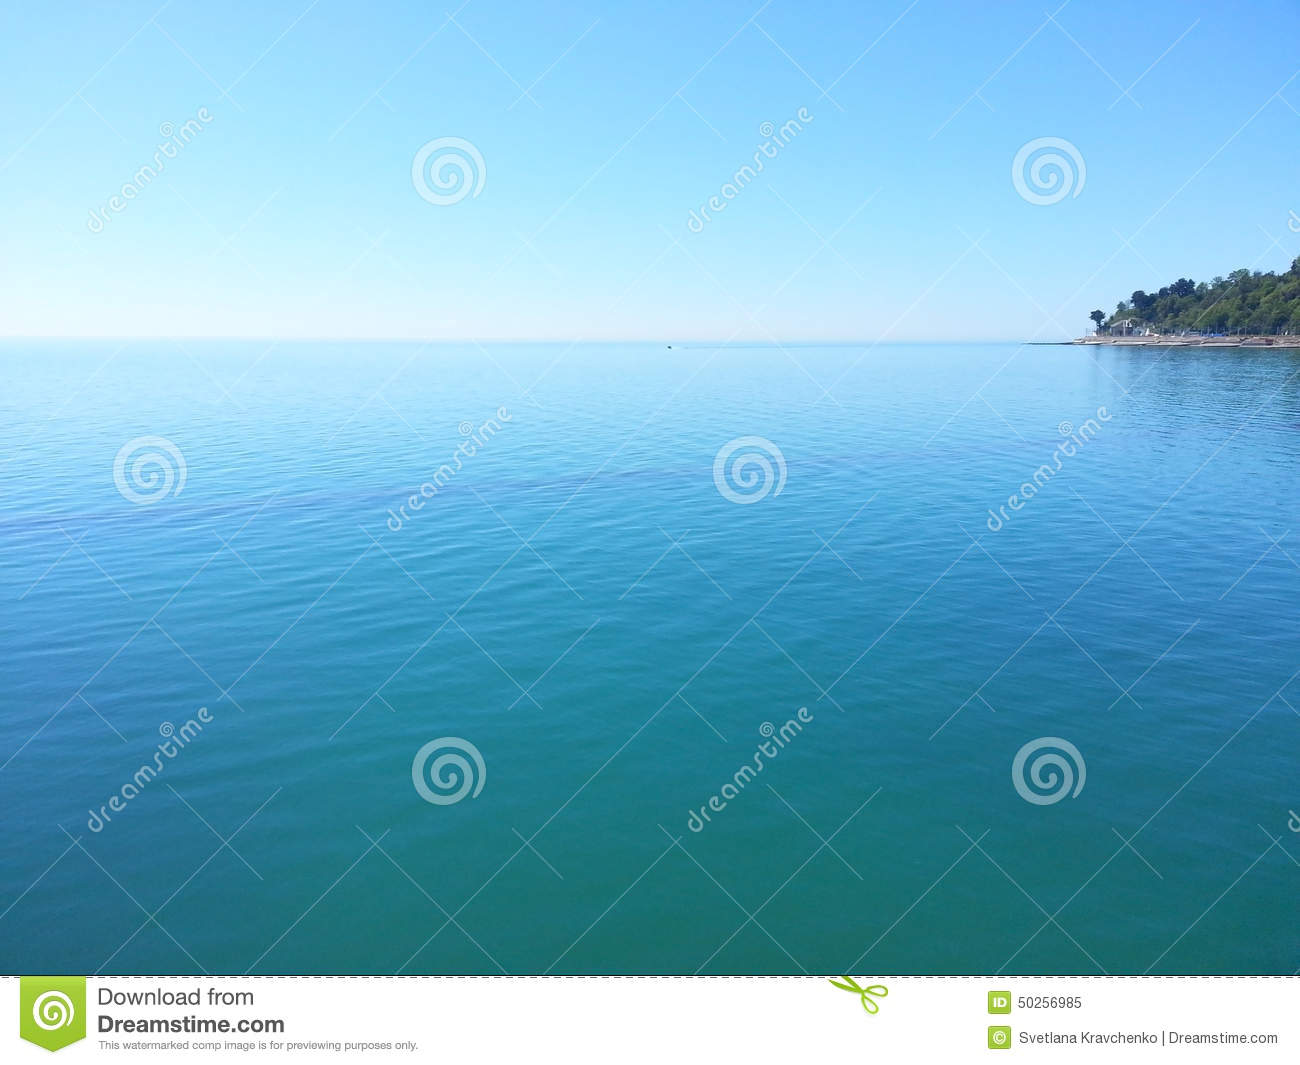 A small island in the blue water of Black Sea